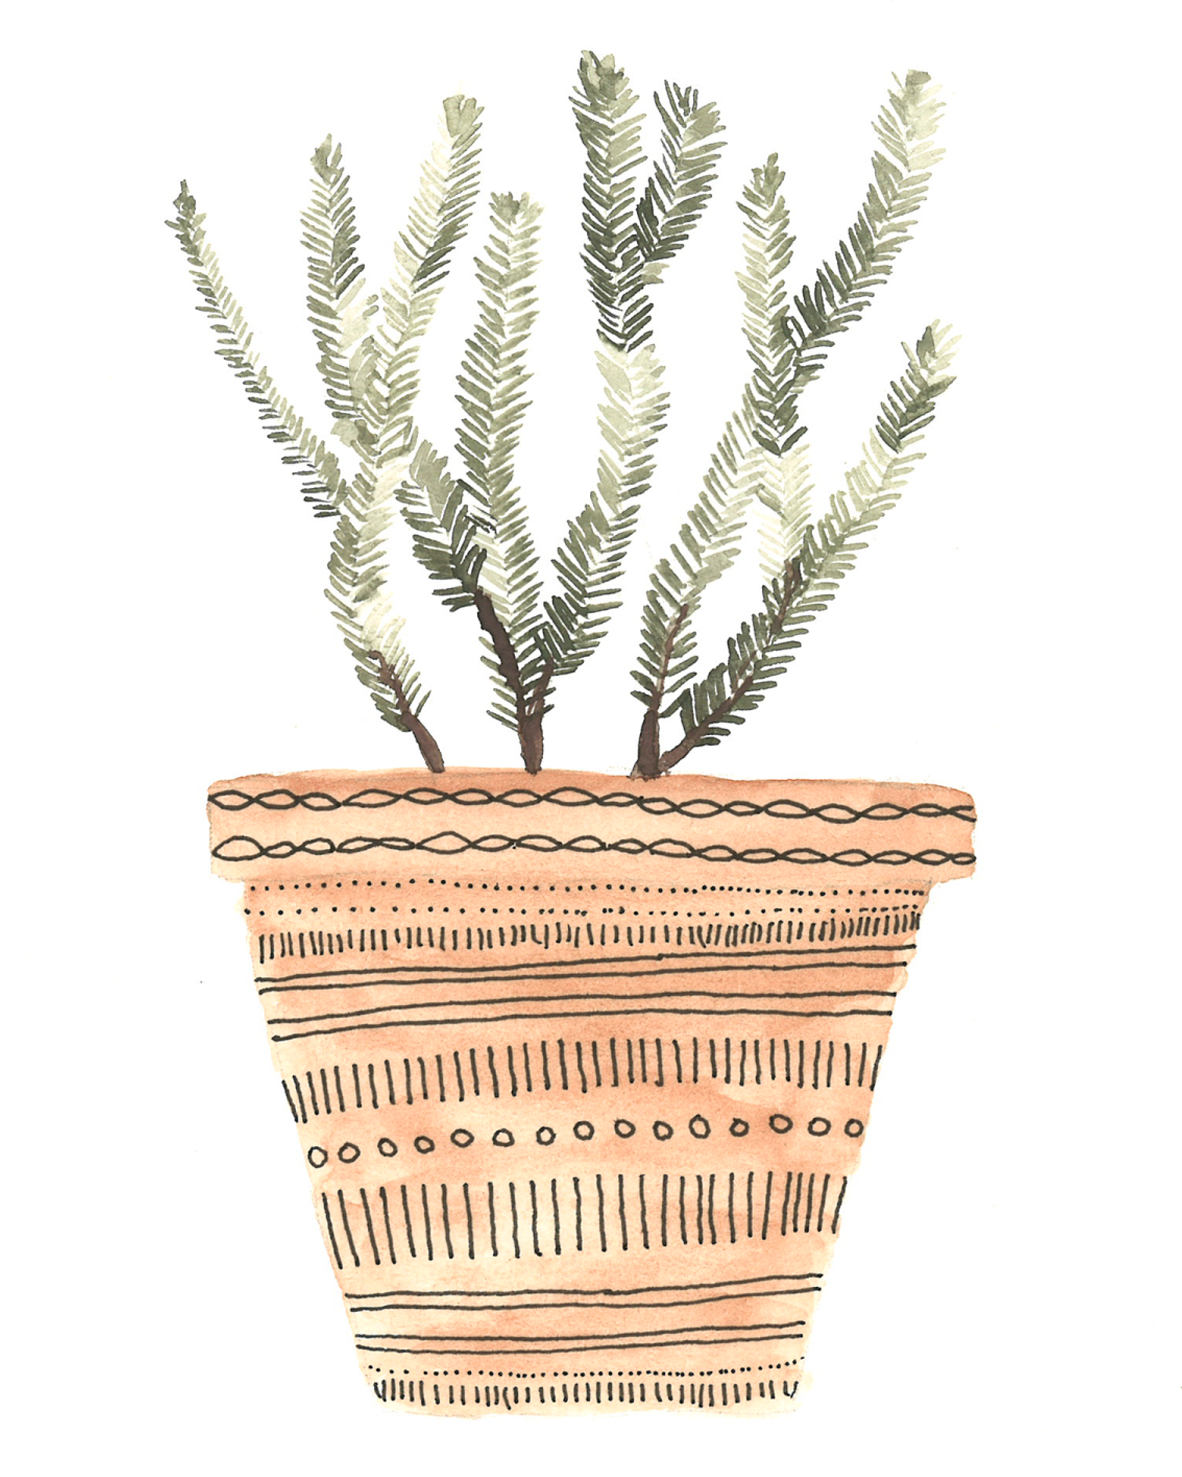 Potted rosemary plant - watercolor and ink on paper